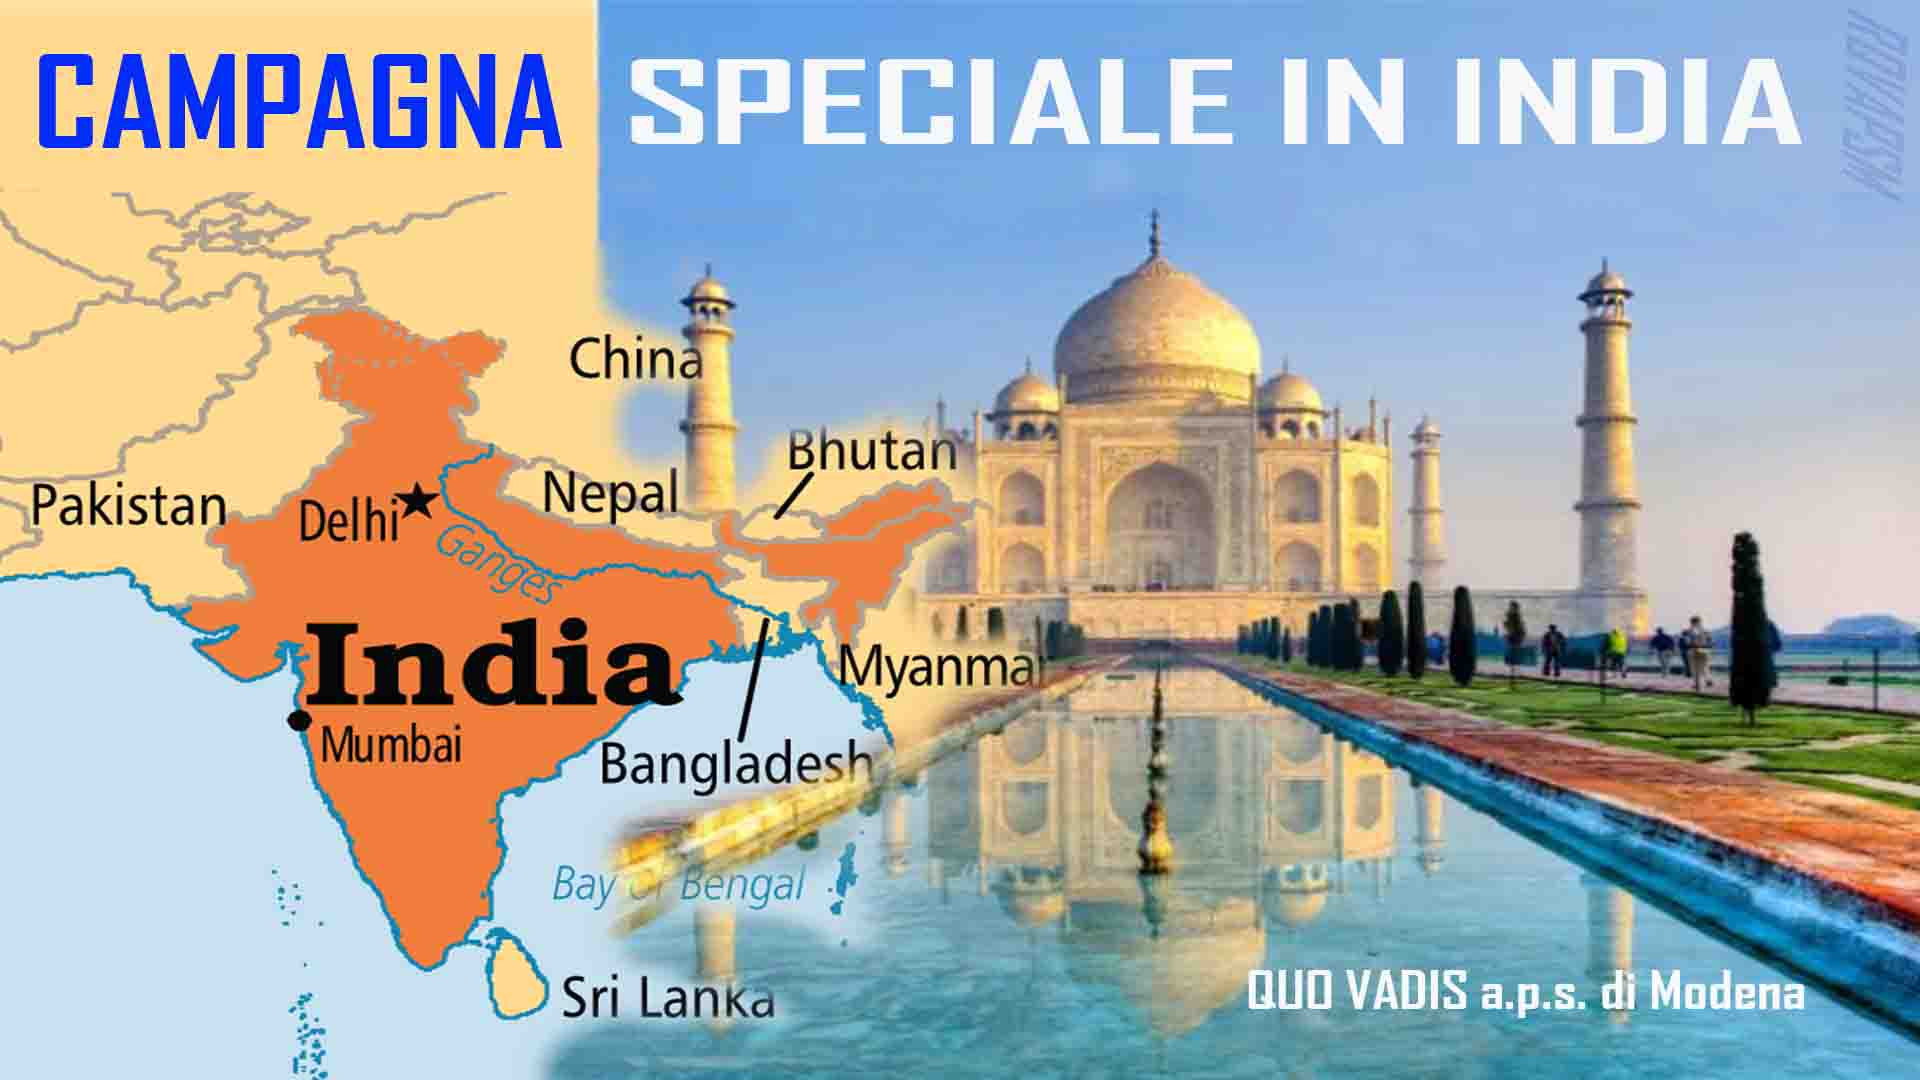 CAMPAGNA SPECIALE IN INDIA